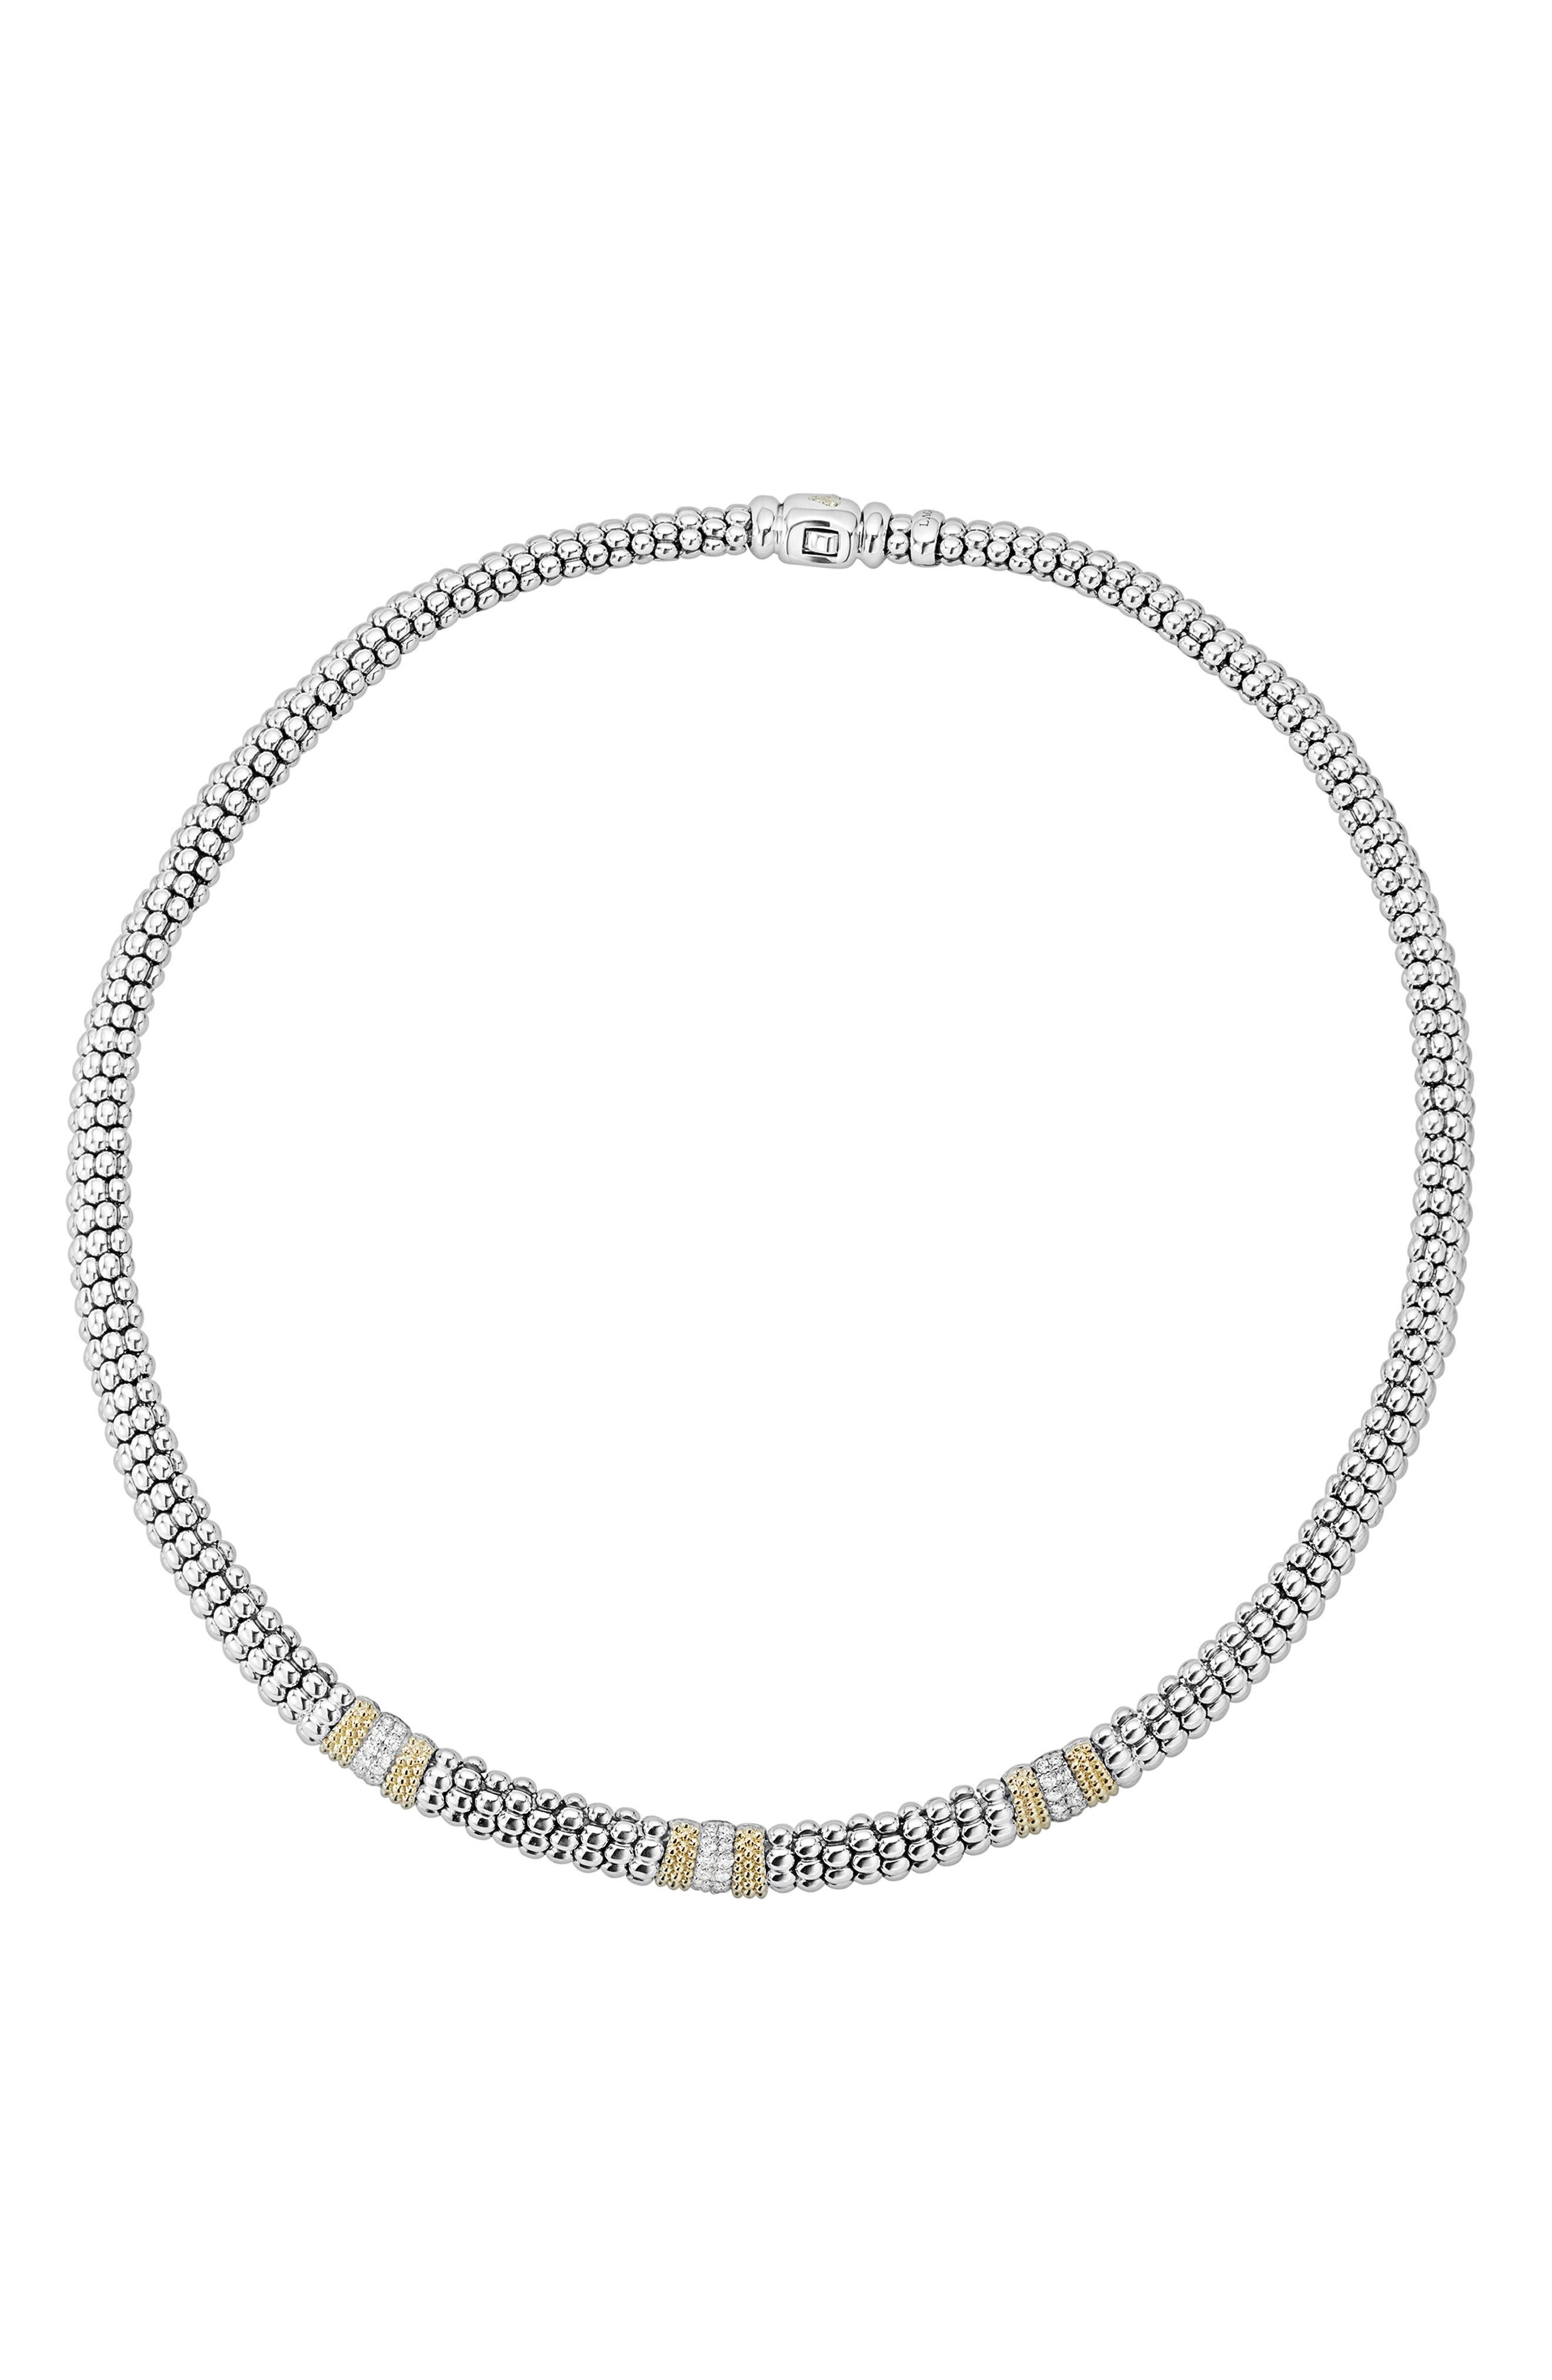 Diamond Lux Triple Station Collar Necklace,                             Alternate thumbnail 2, color,                             SILVER/ DIAMOND